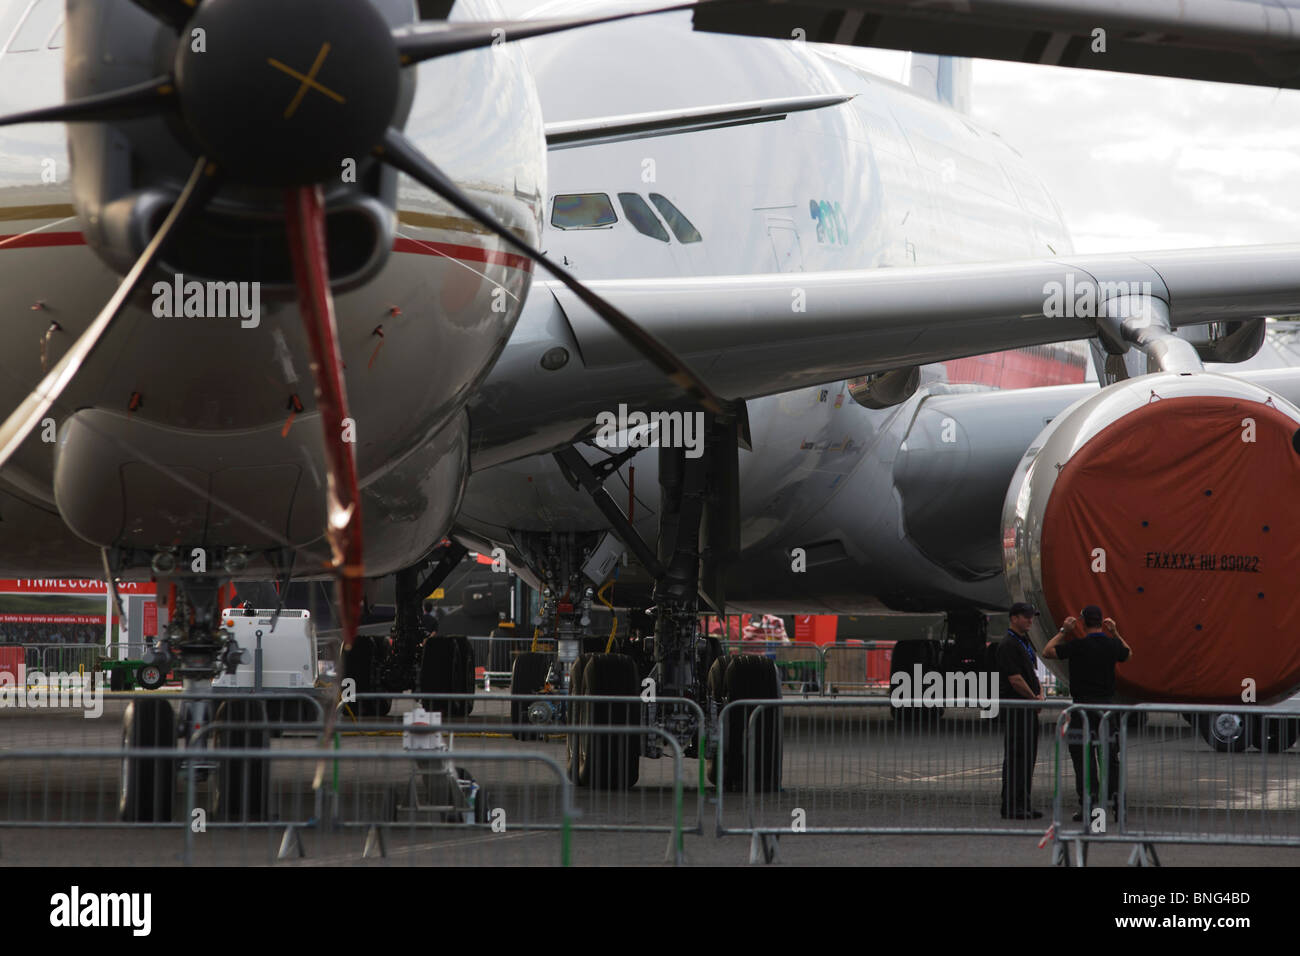 Security staff and static display aircraft lined-up at the Farnborough Airshow, the A380 at the back and a 777 in Stock Photo